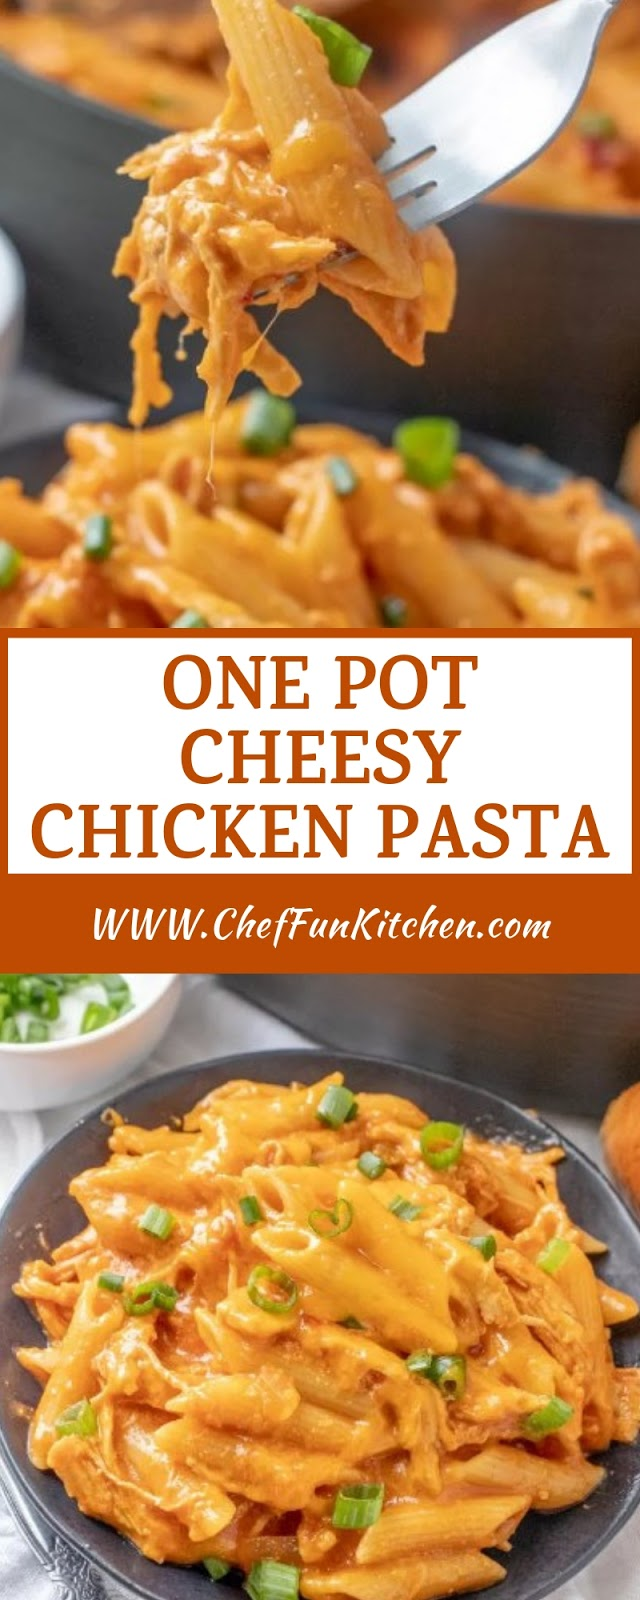 ONE POT CHEESY CHICKEN PASTA